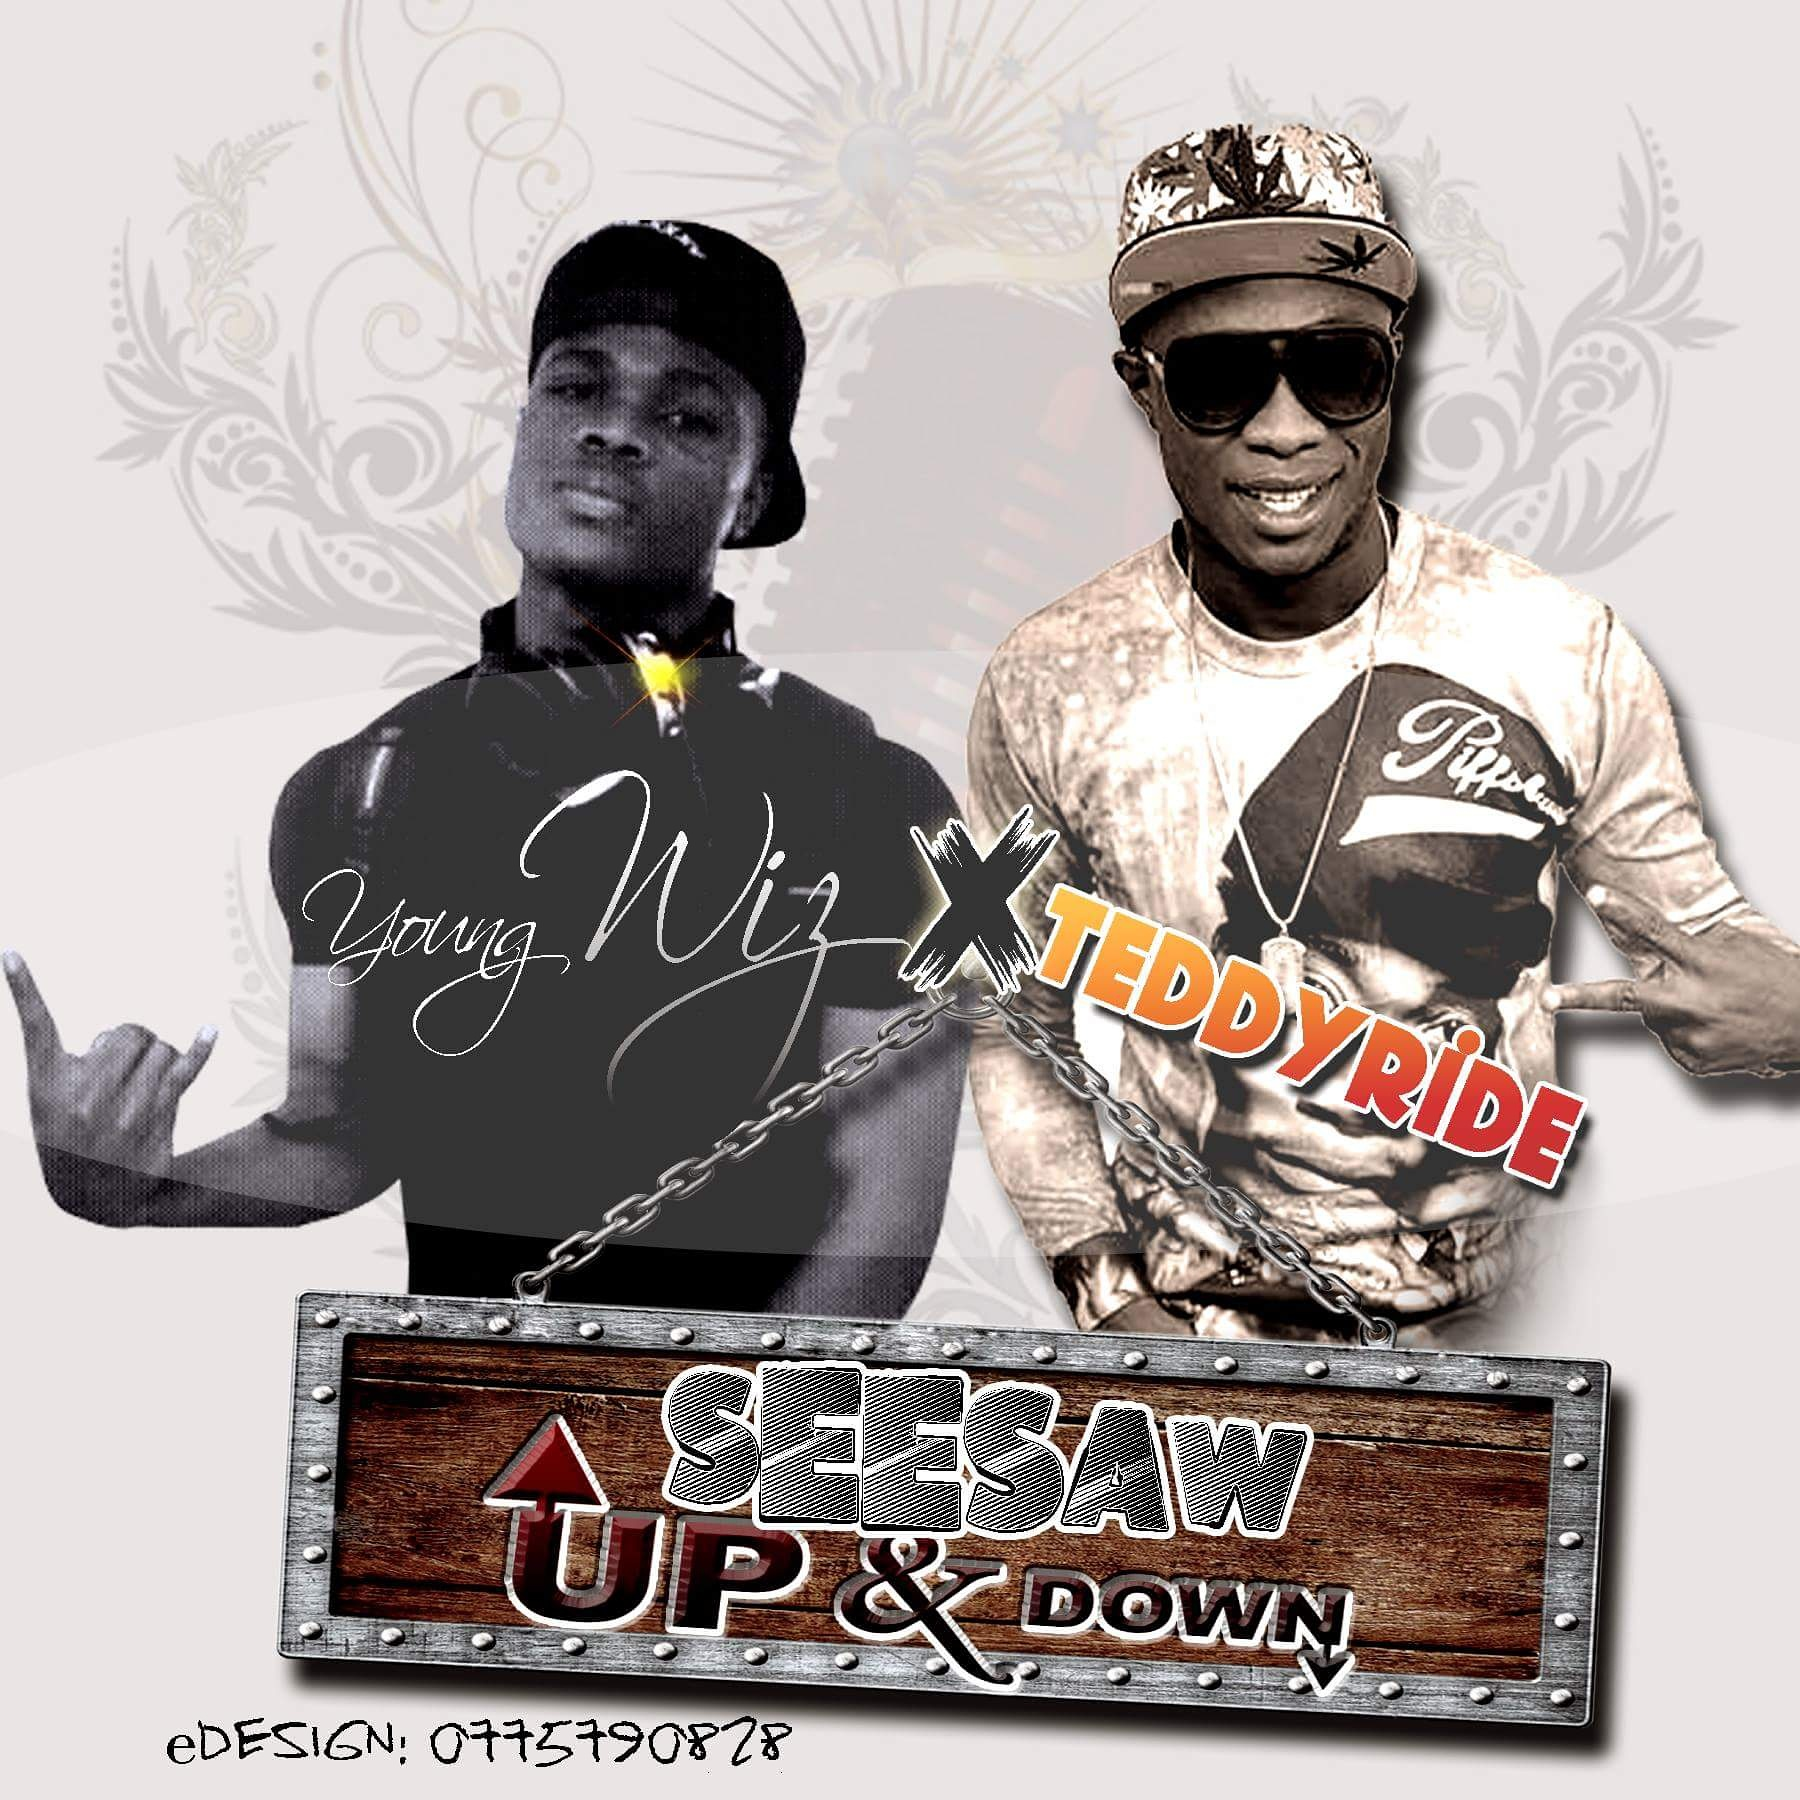 Mp3 Young Down: Young Wiz Feat. TeddyRide